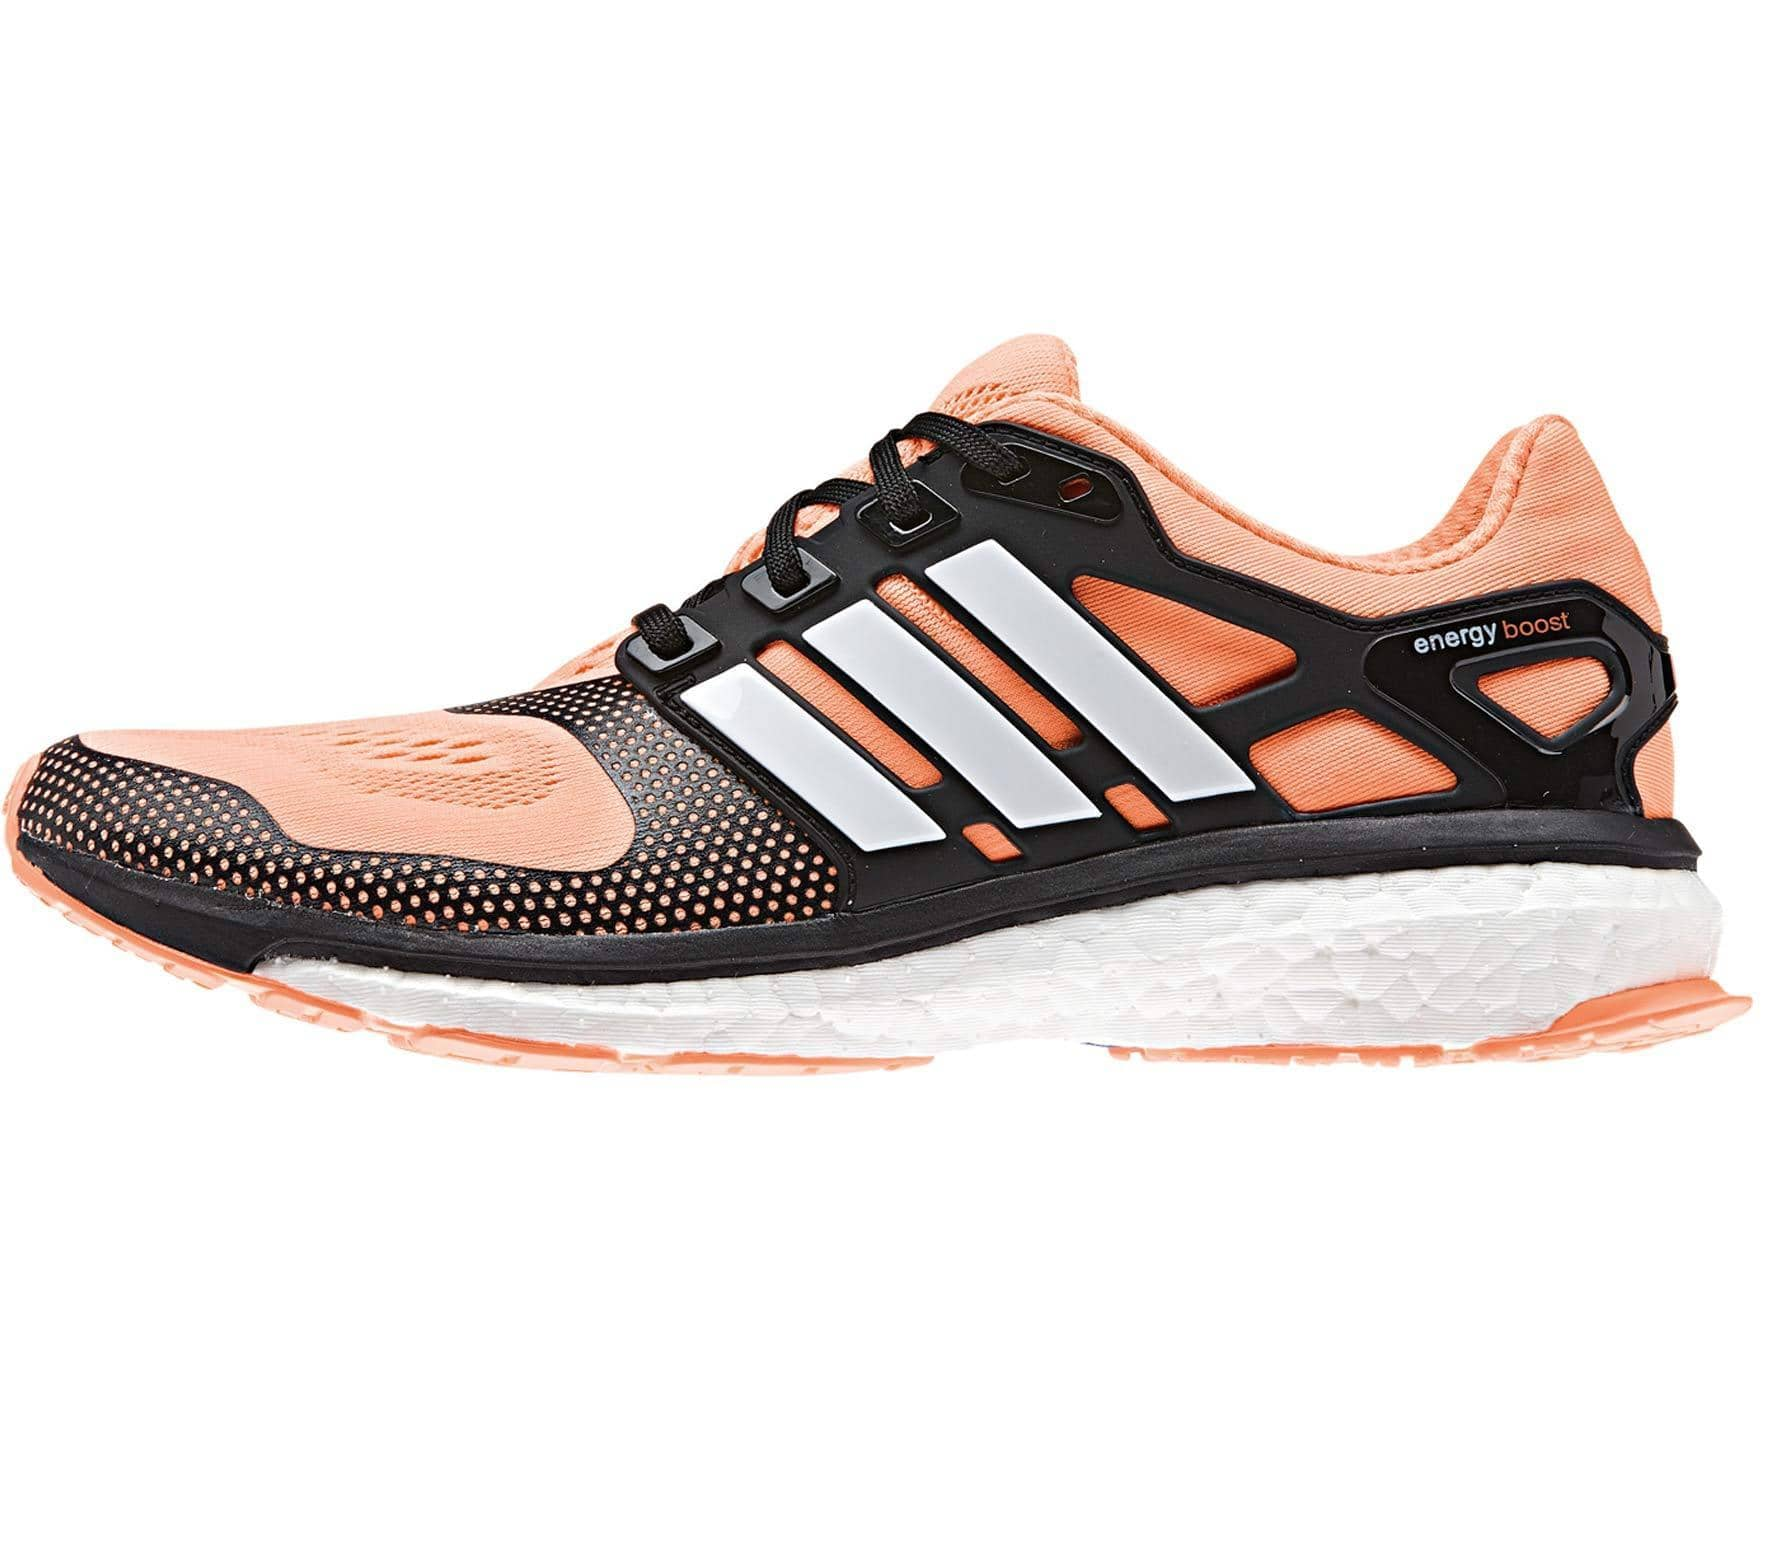 adidas Energy Boost 2 ESM women's running shoes Damen